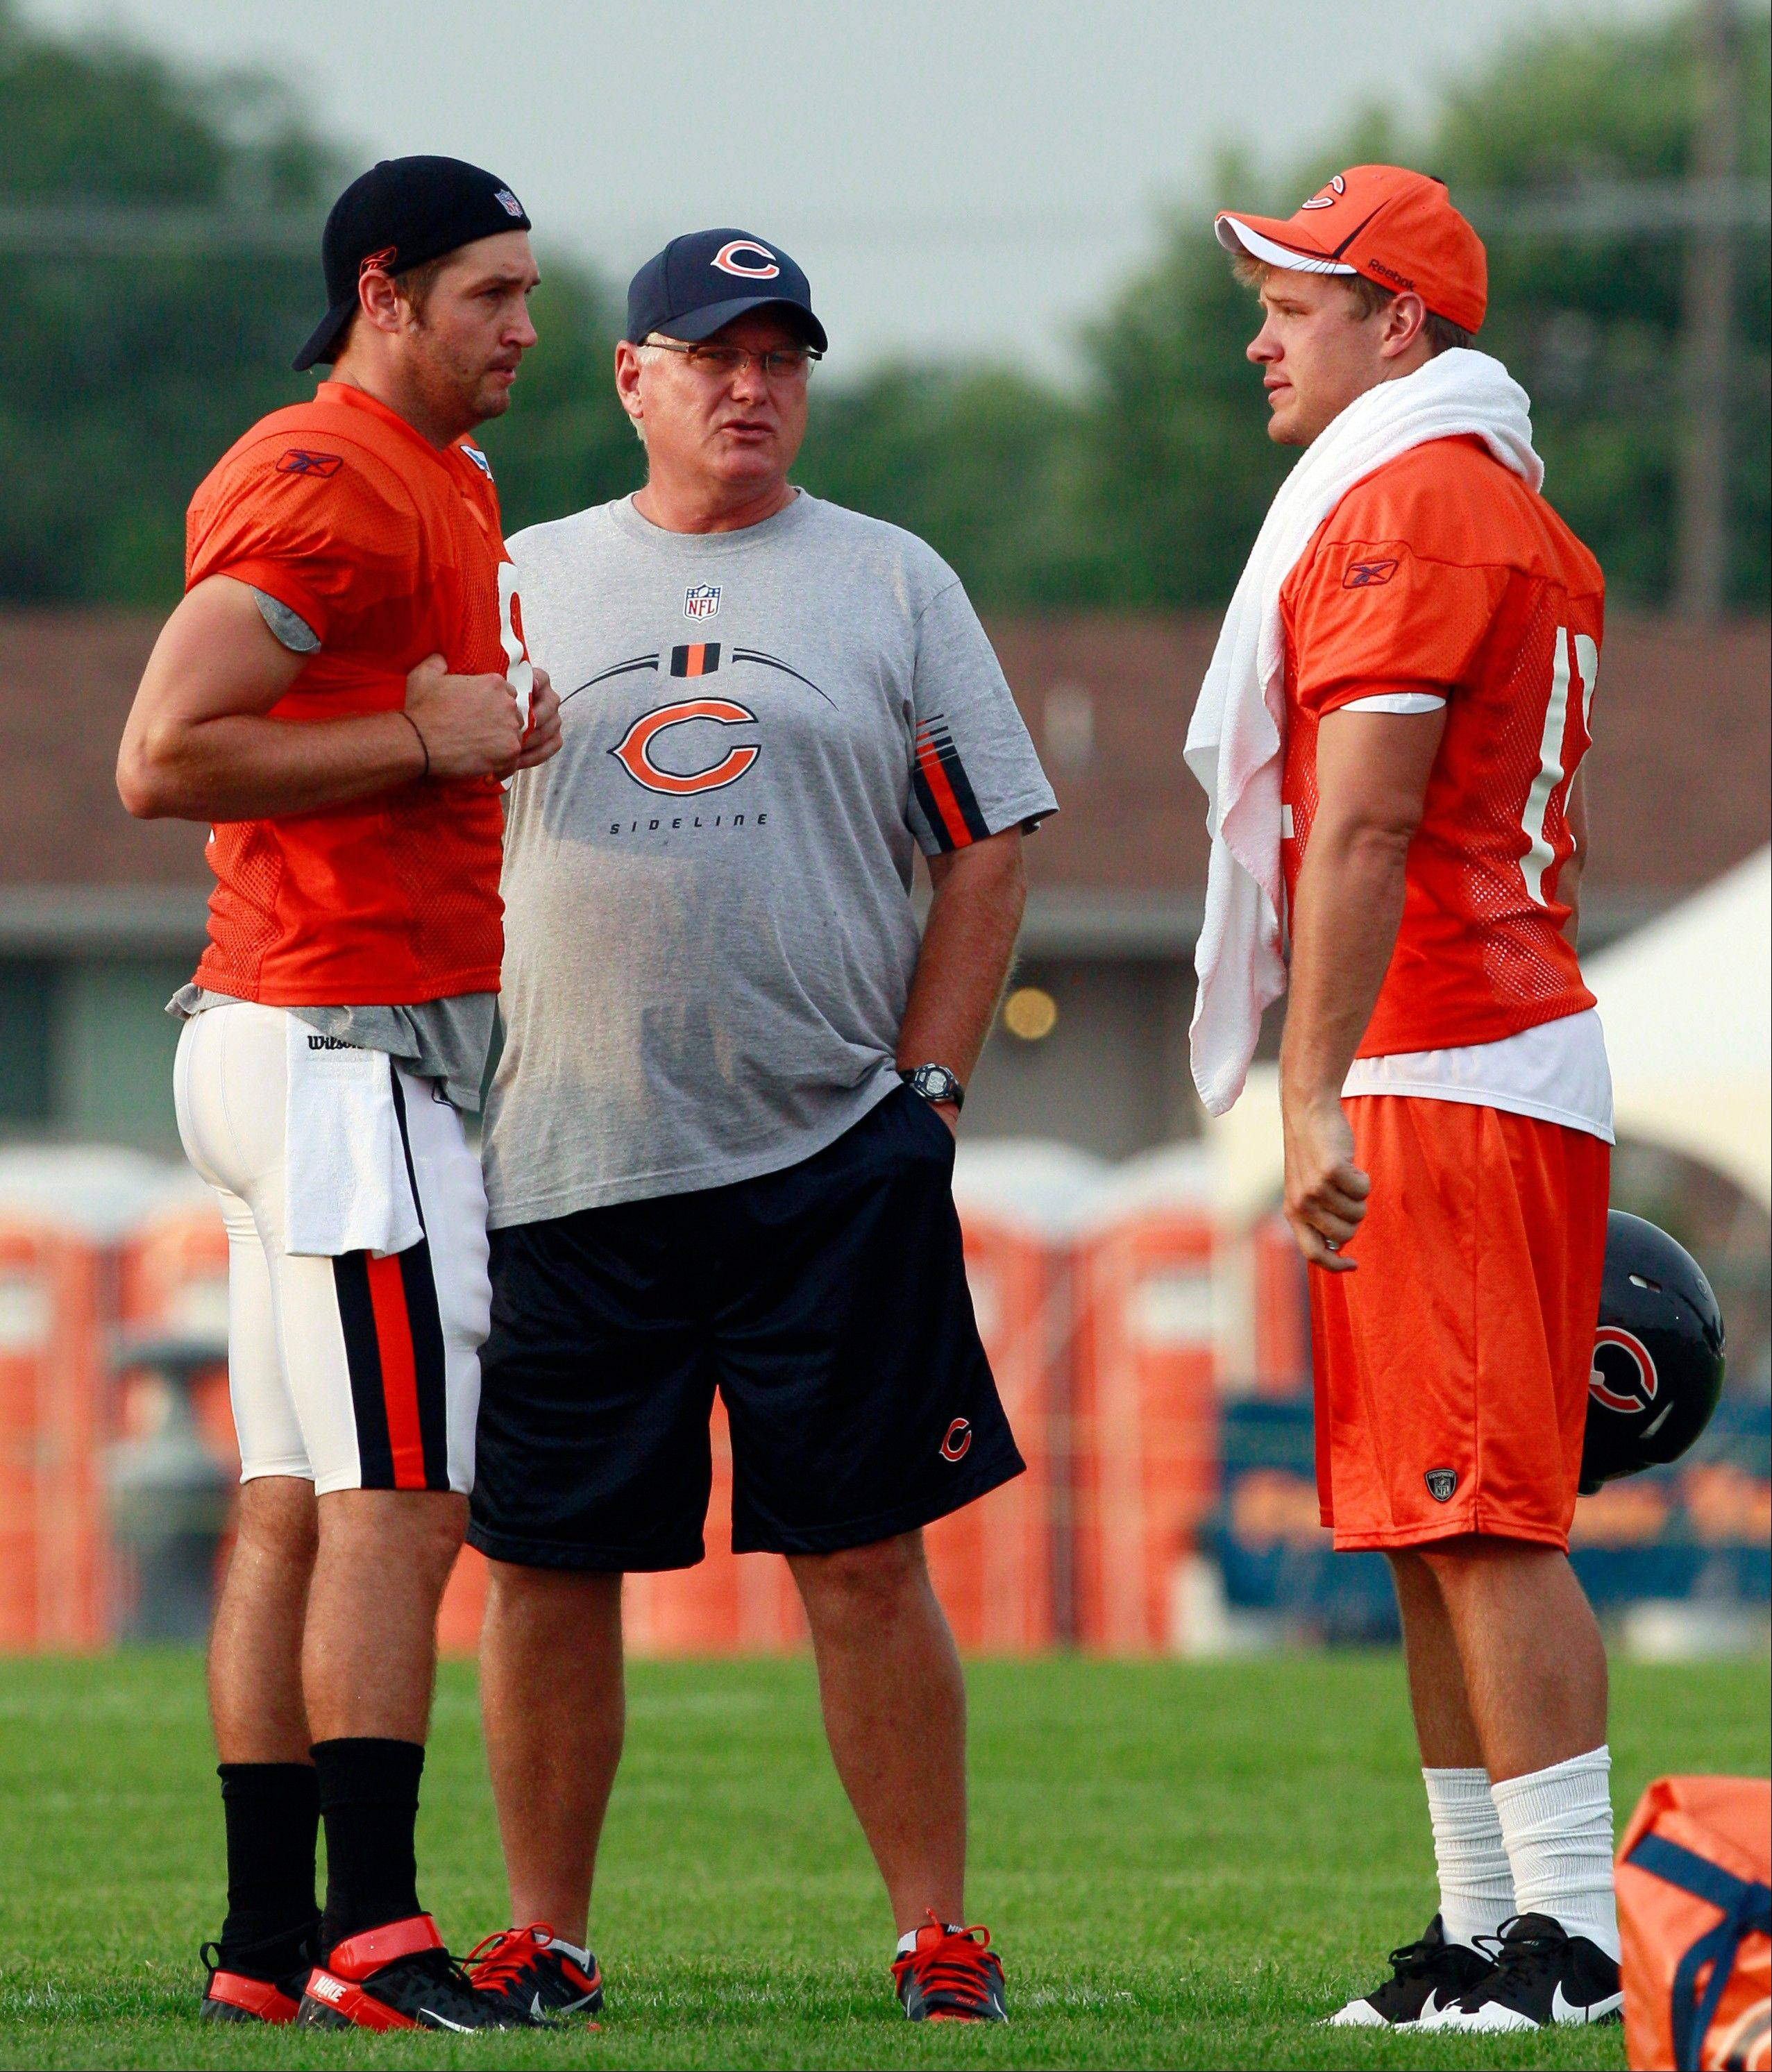 Bears offensive coordinator Mike Martz, center, talks with quarterbacks Jay Cutler, left, and Caleb Hanie during camp Monday. On Tuesday, Martz told reporters he was �giddy� watching Cutler�s improved dropbacks and footwork.